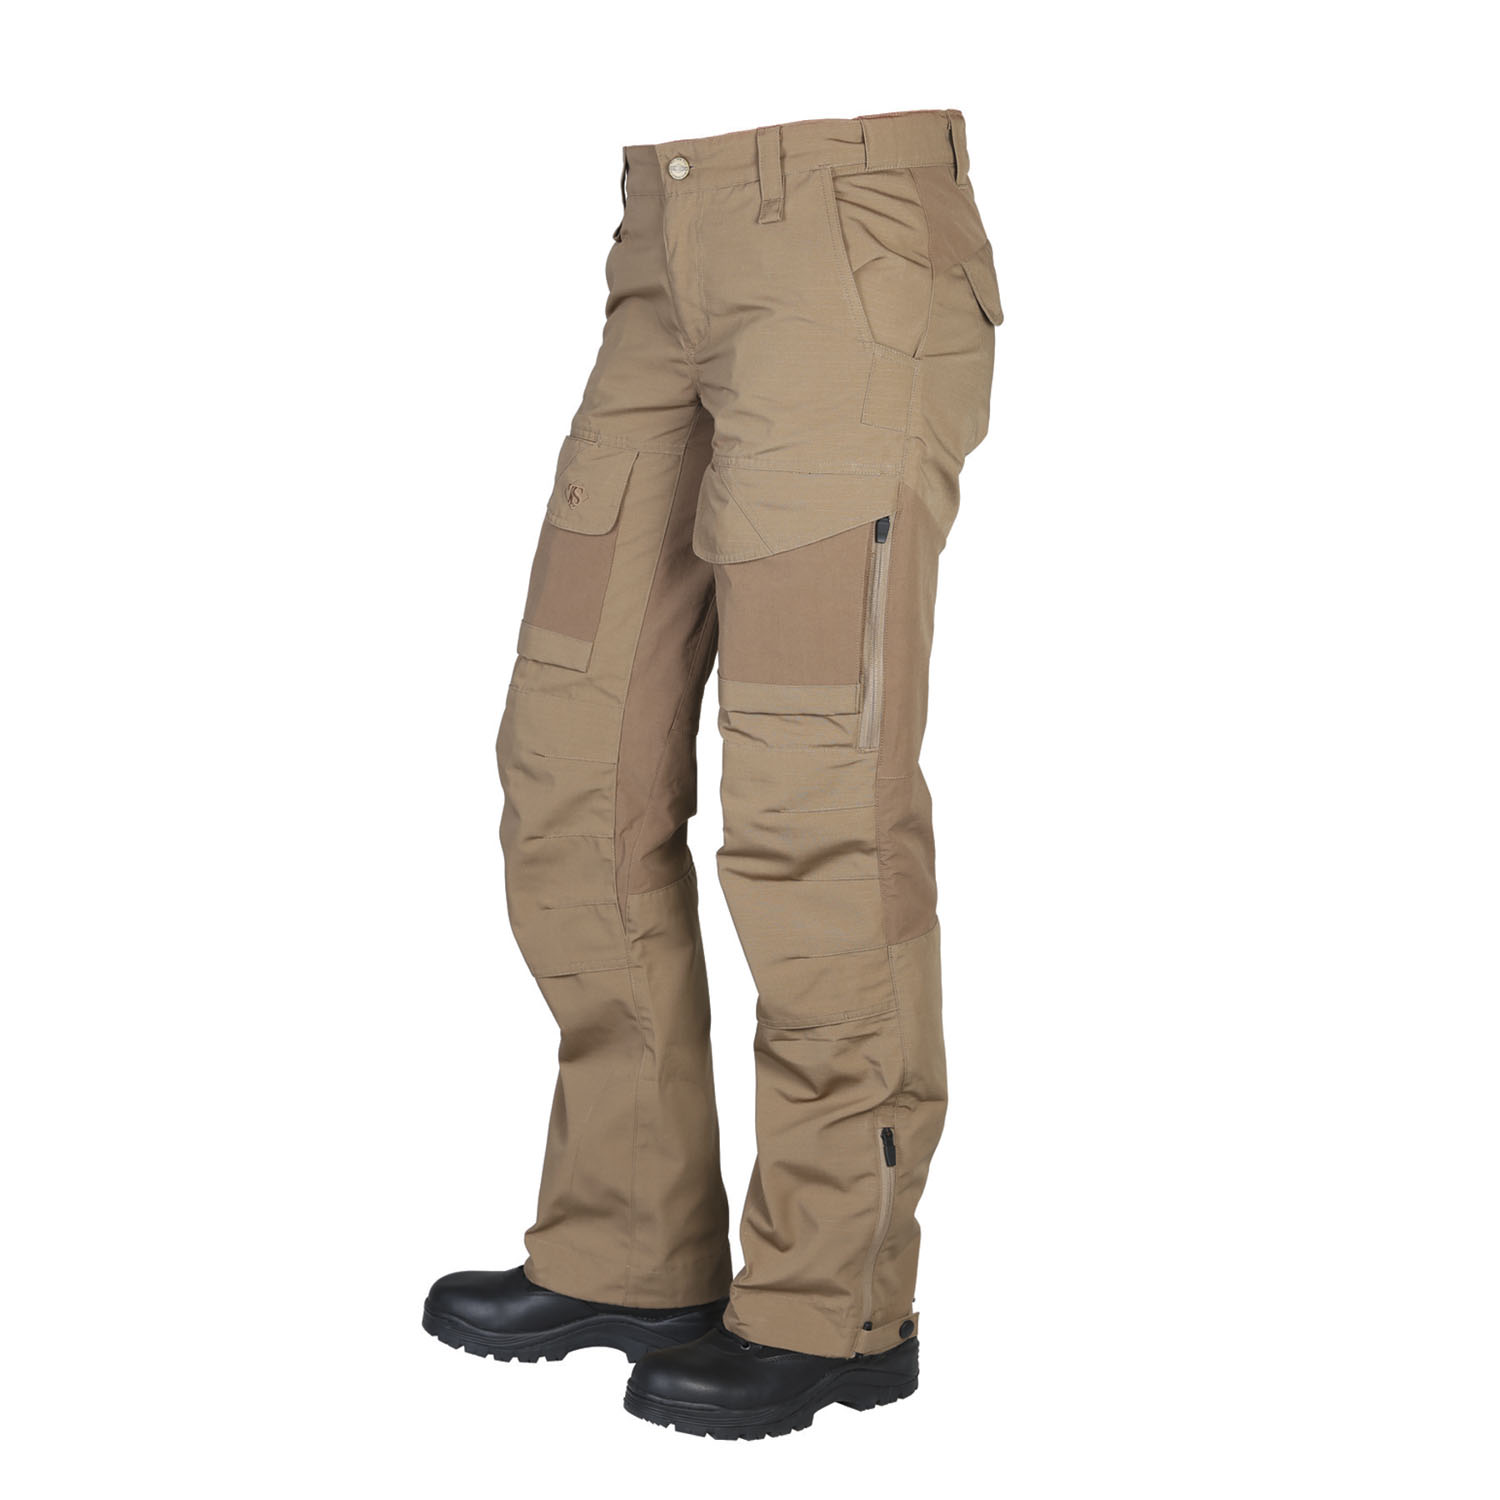 TRU-SPEC Women's 24-7 Xpedition pants